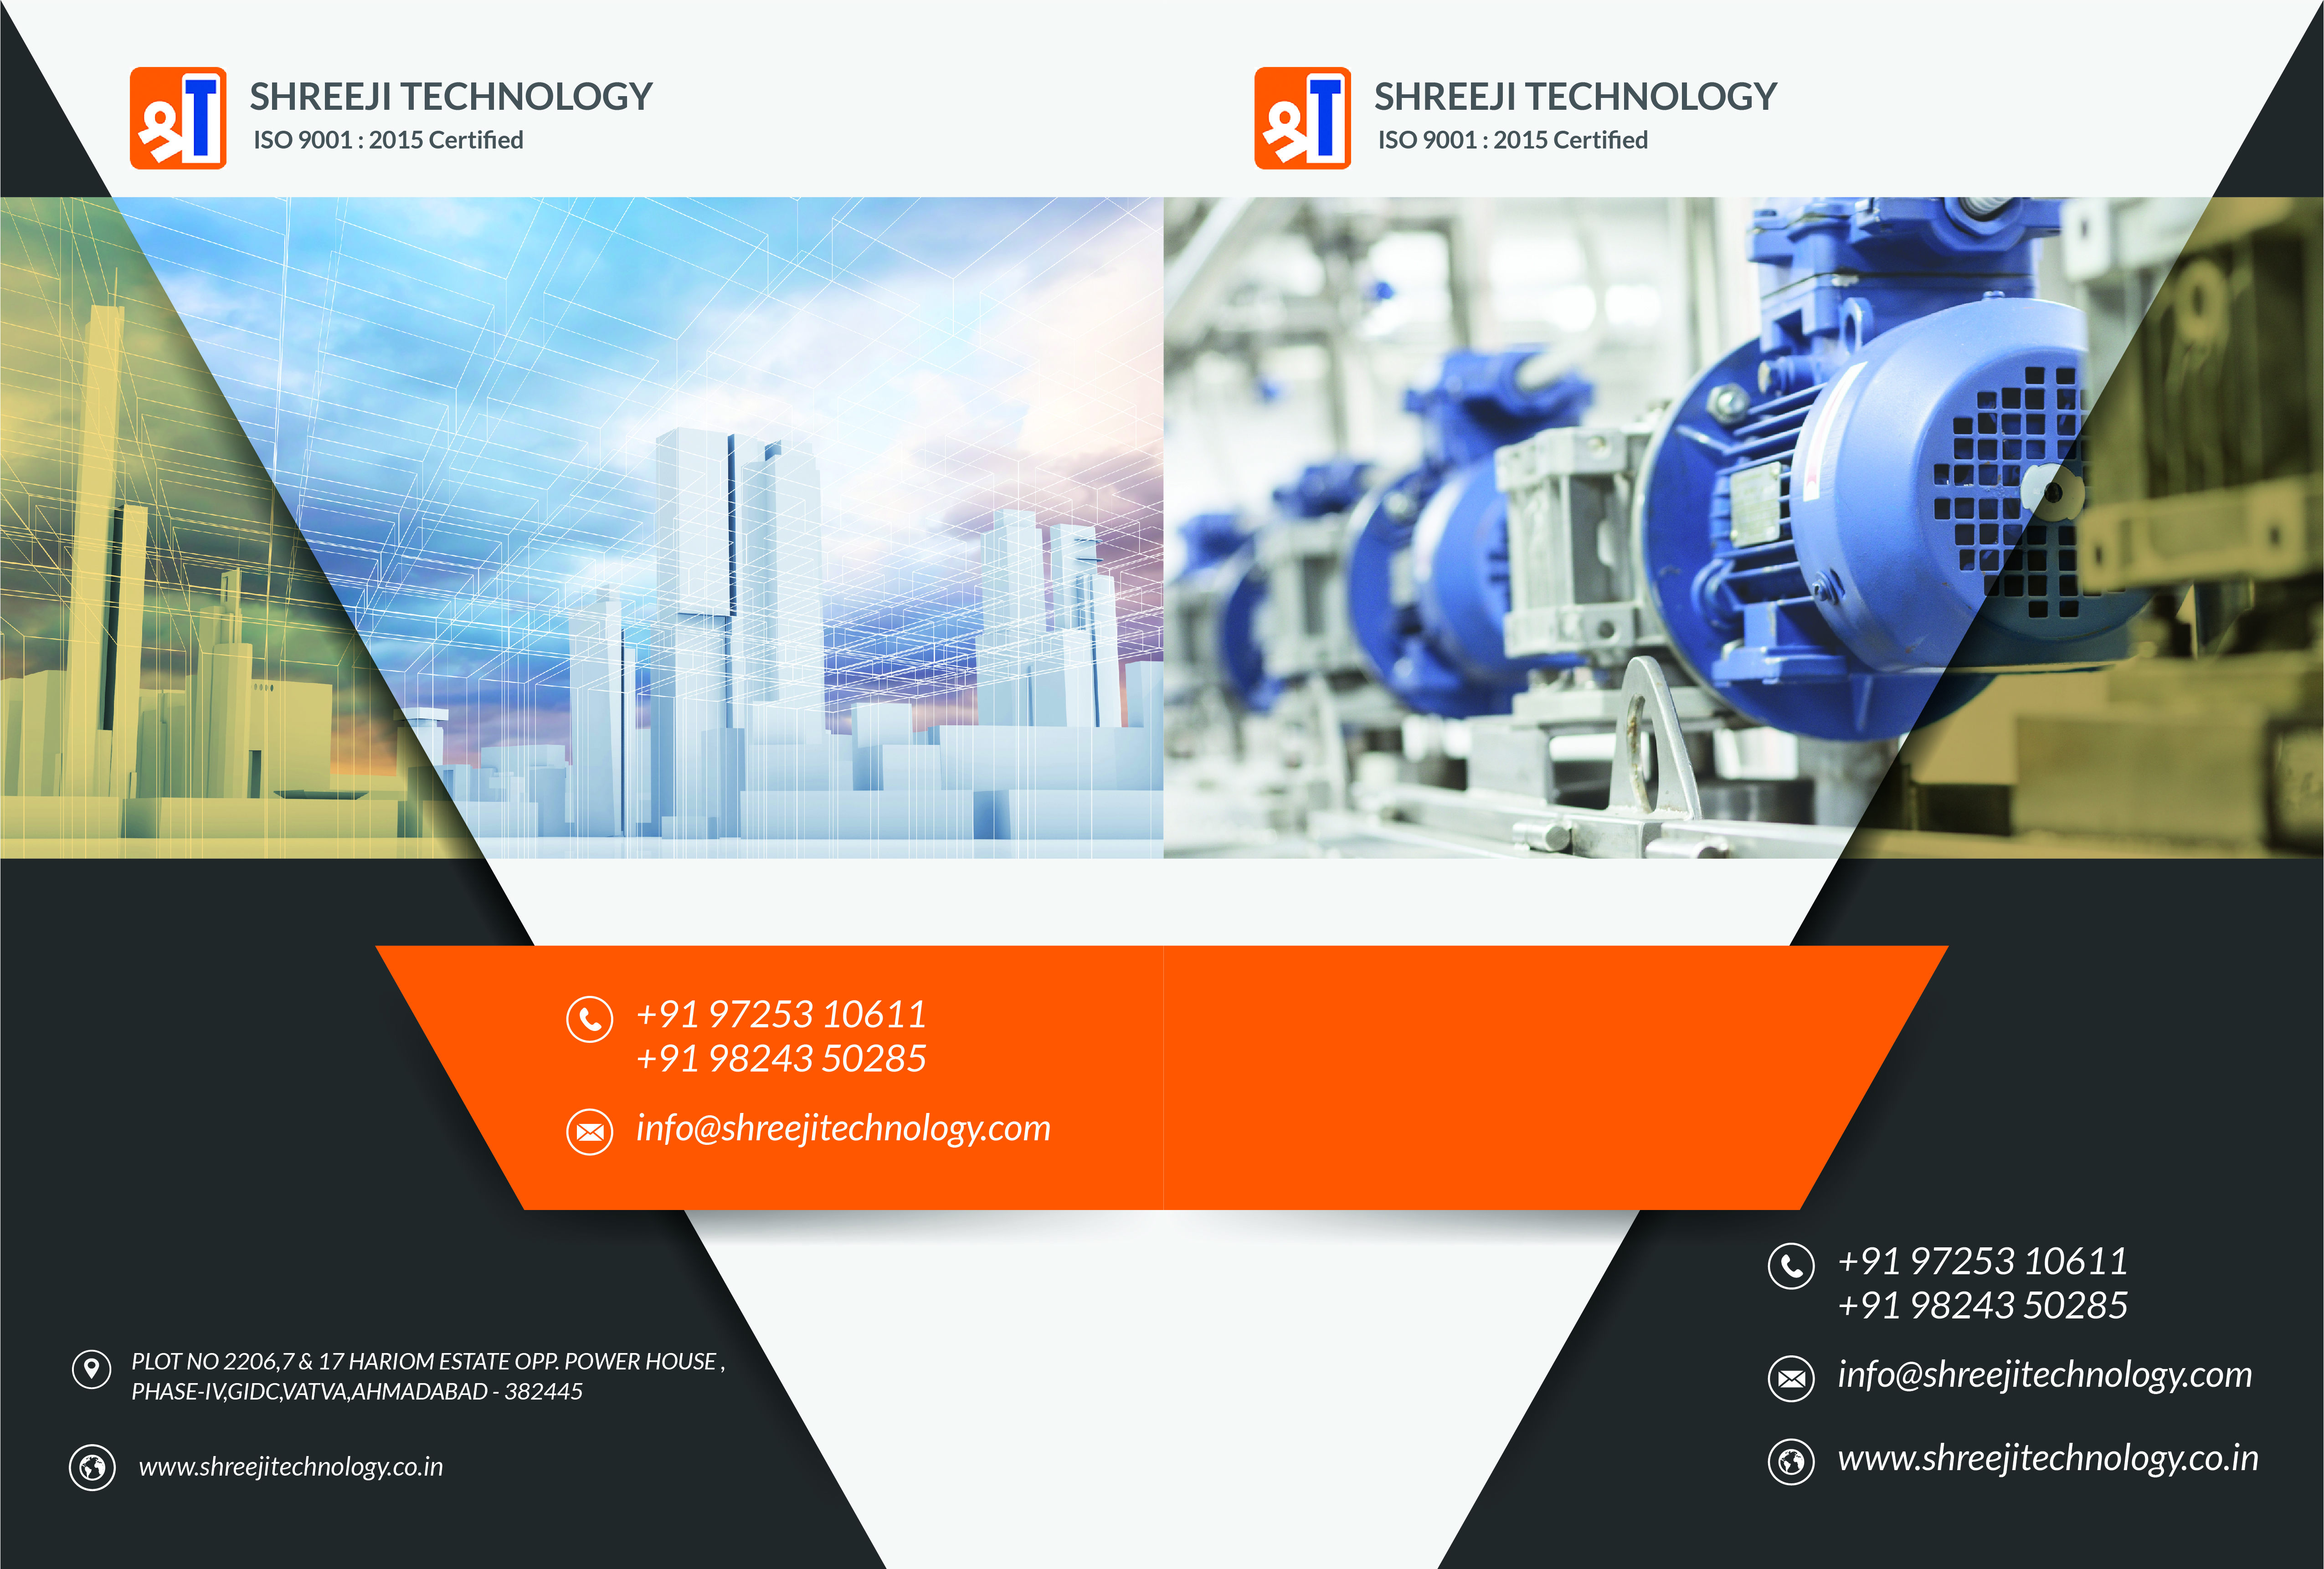 Shreeji Technology